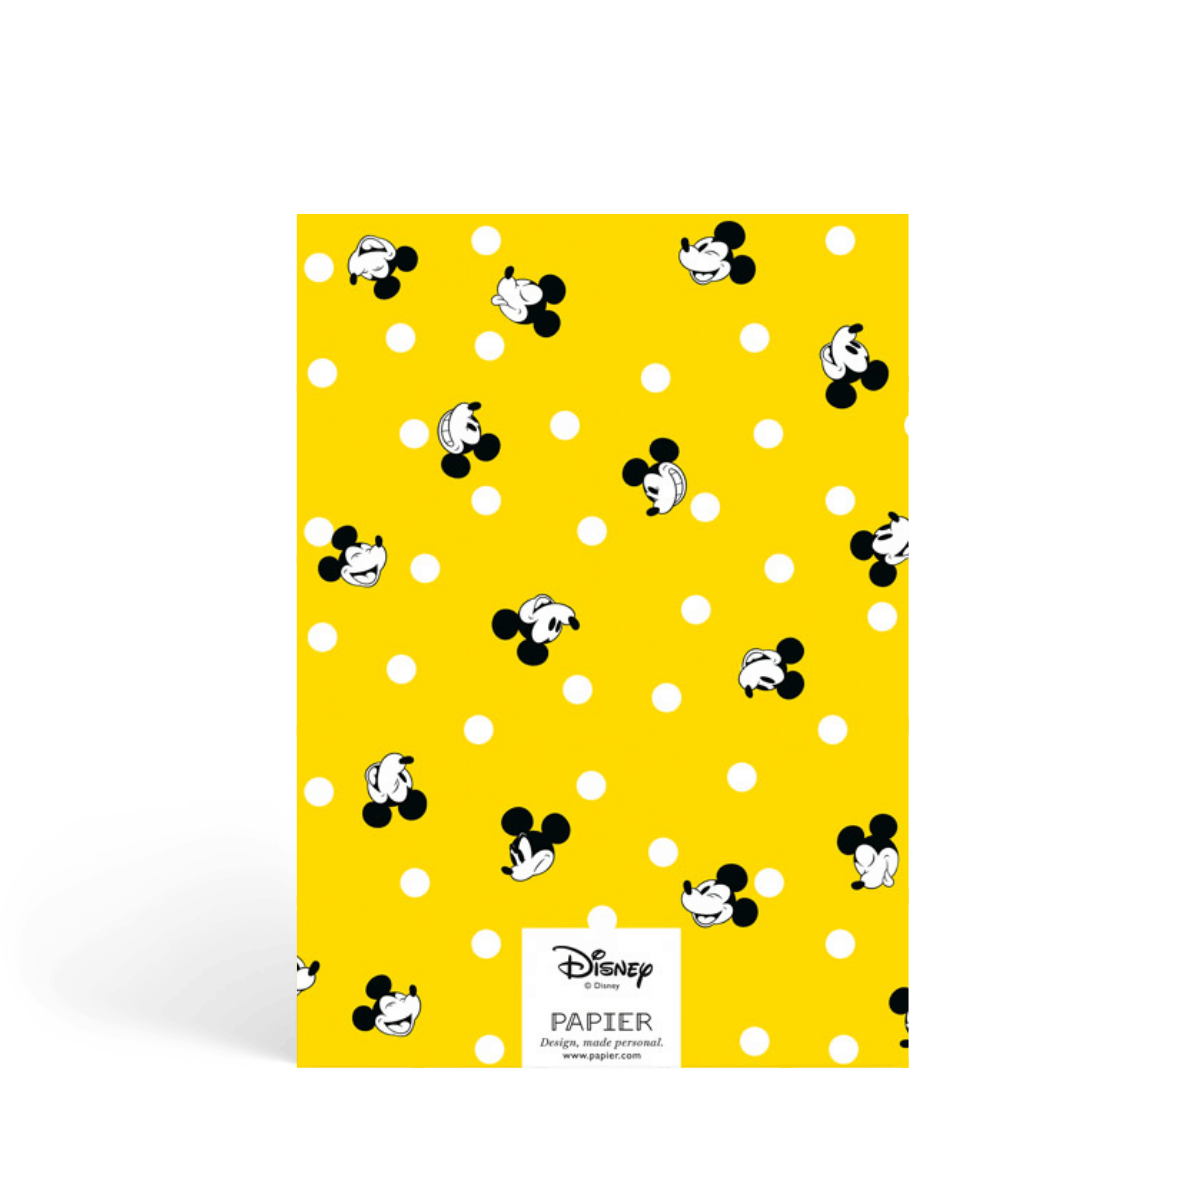 Https%3a%2f%2fwww.papier.com%2fproduct image%2f55859%2f5%2fmickey polka 13416 arriere 1542303889.png?ixlib=rb 1.1